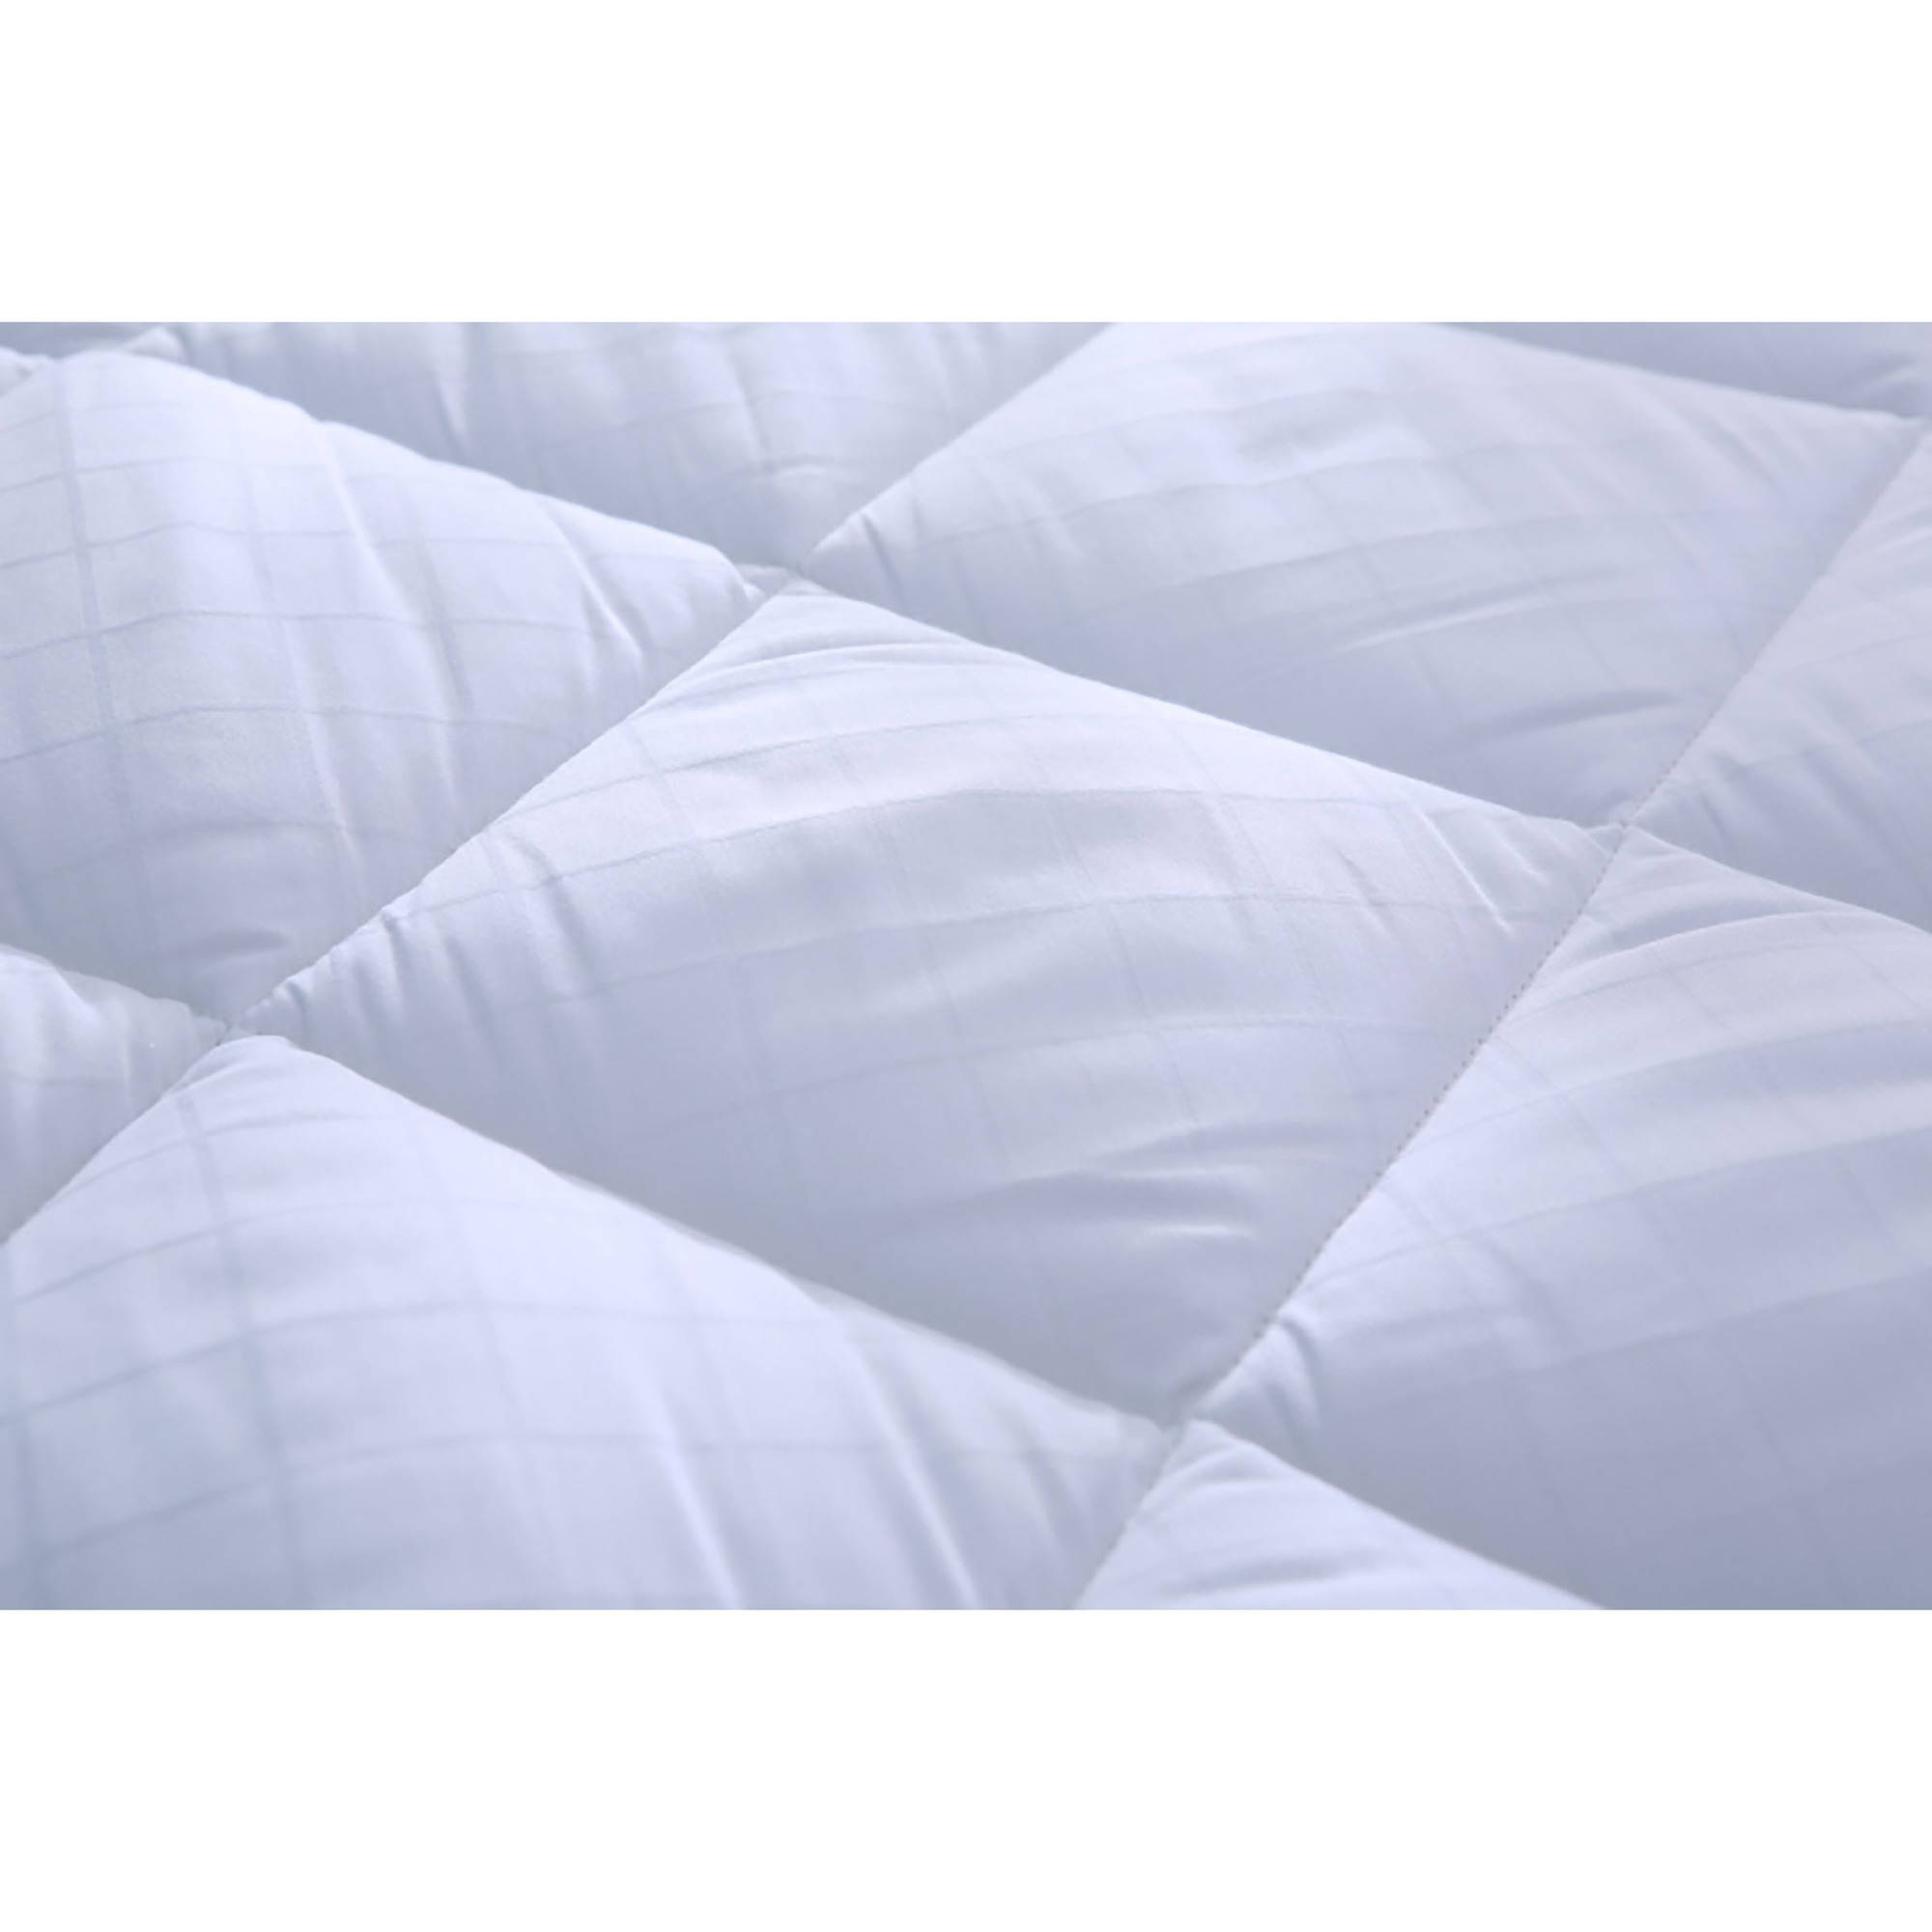 St. James Home Waterproof Stain Resistant Mattress Pad by St James Home